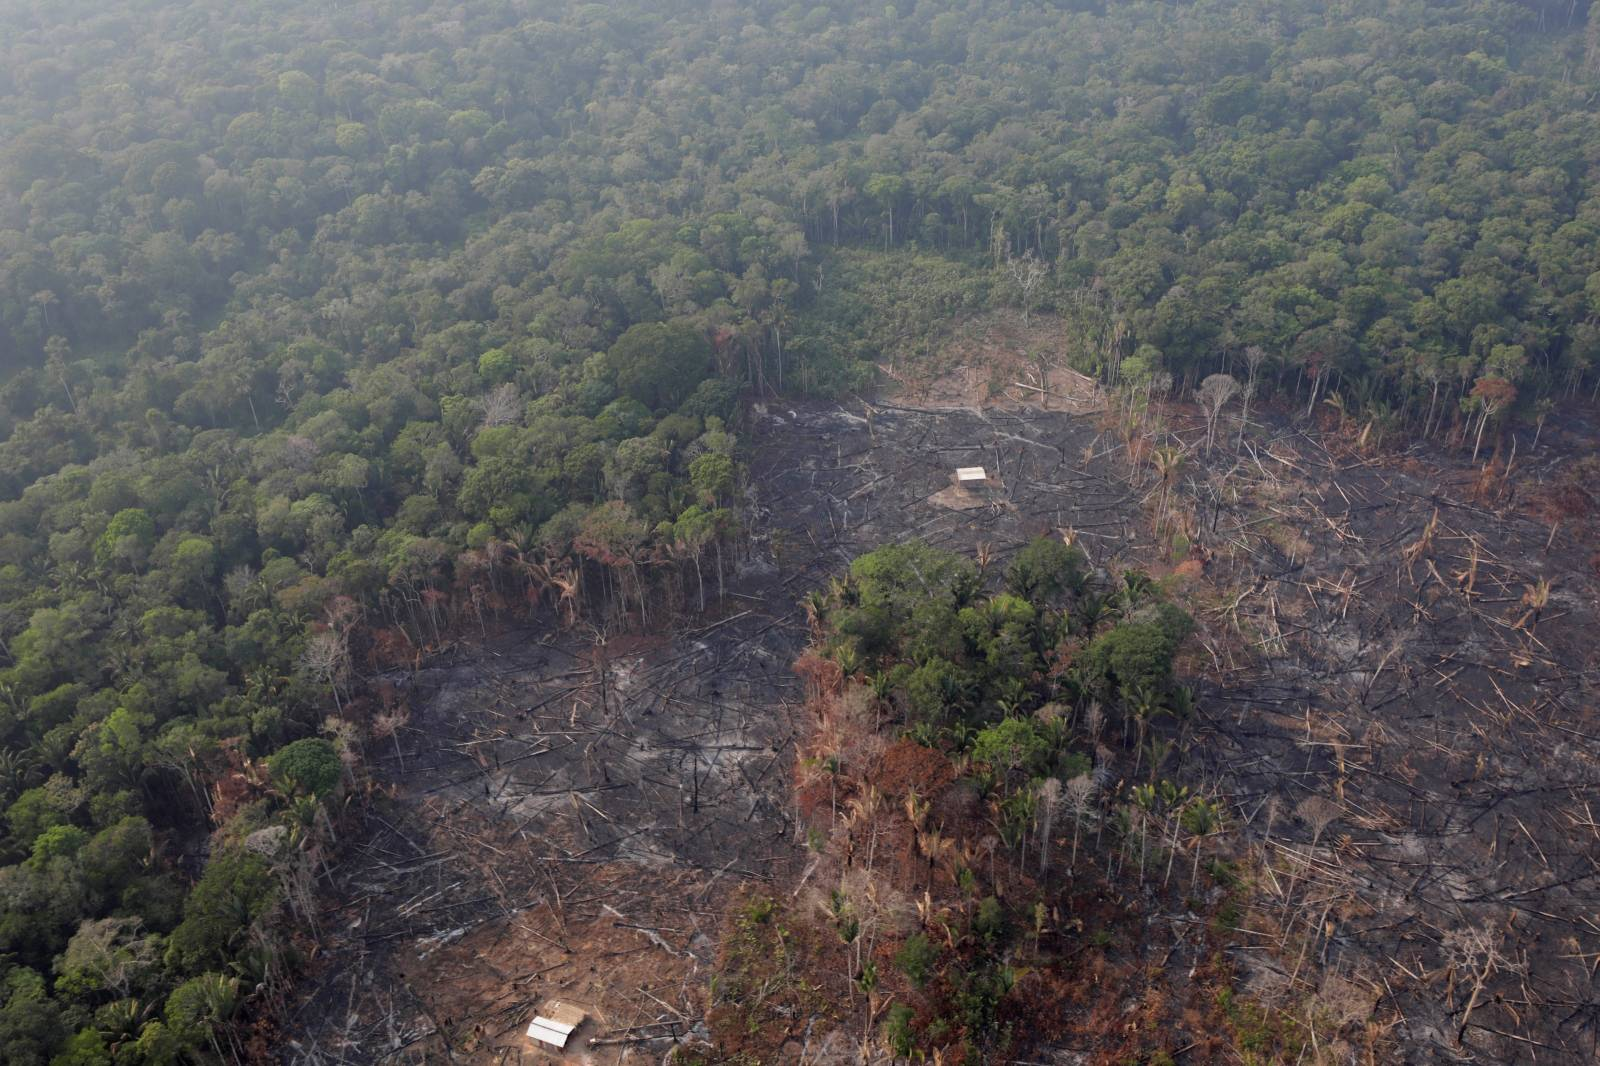 An aerial view of a deforested plot of the Amazon near Humaita